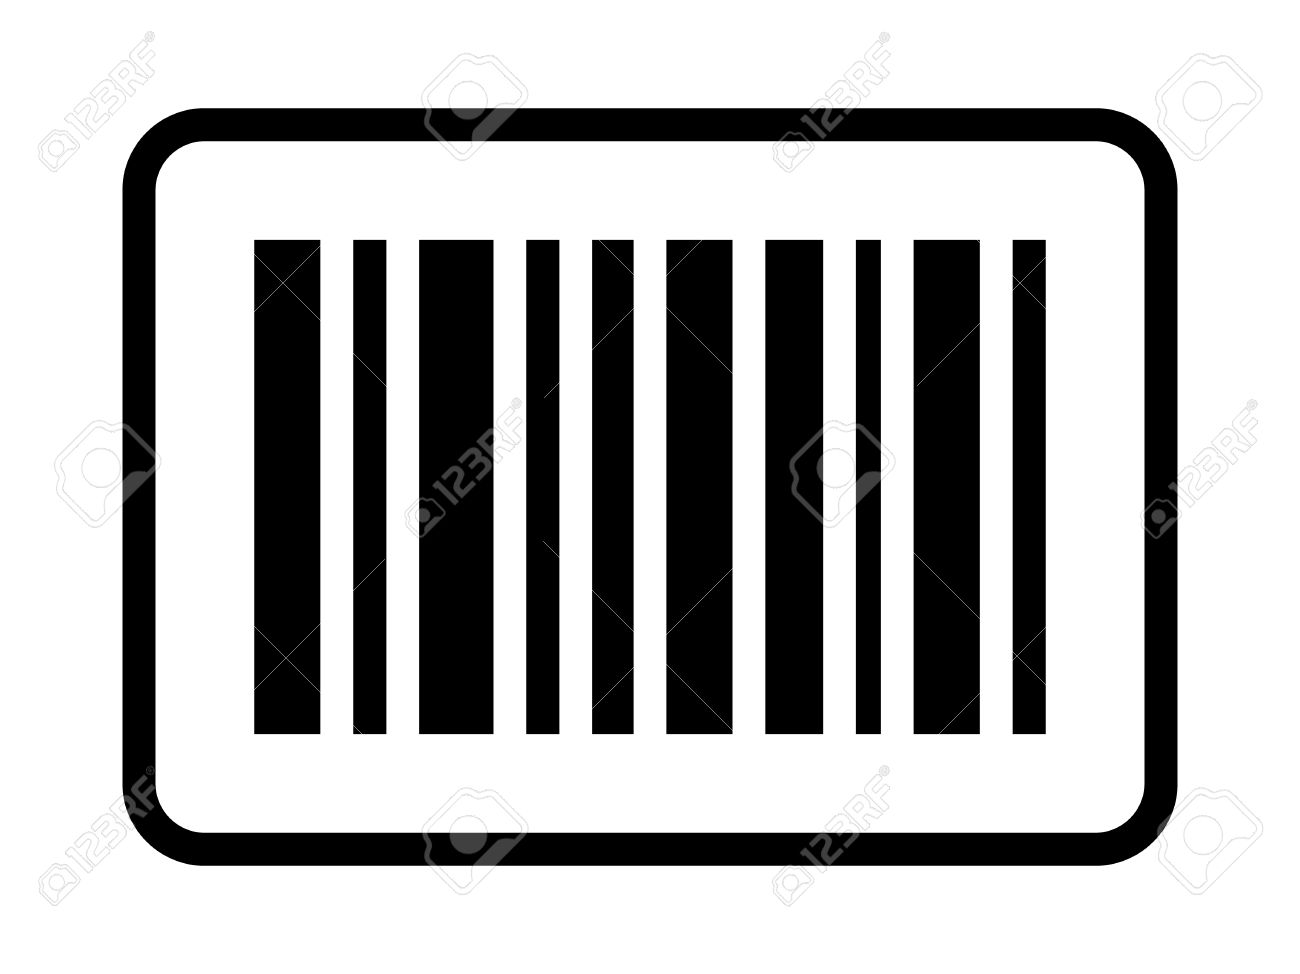 business inventory barcode bar code line art icon for apps rh 123rf com barcode clip art free barcode clipart